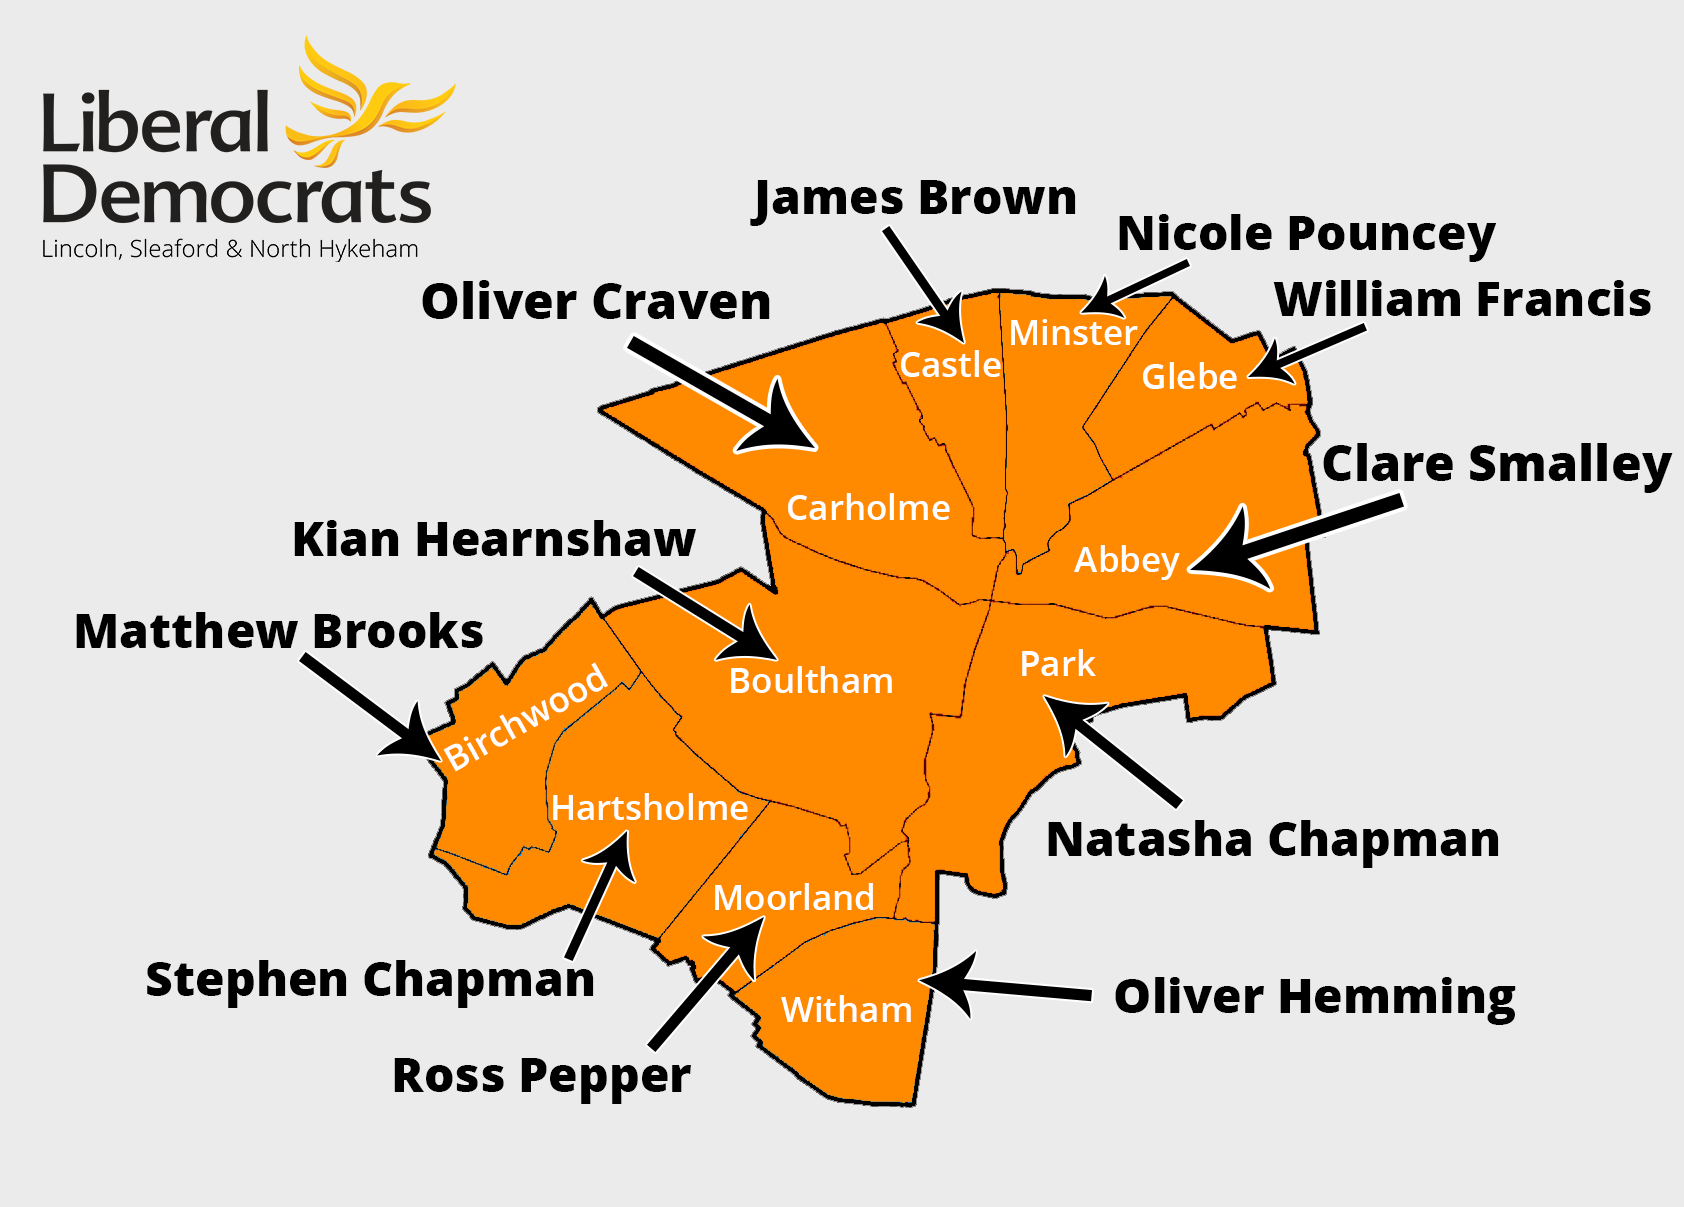 Lib Dem 2019 Candidates announced for Lincoln and North Kesteven